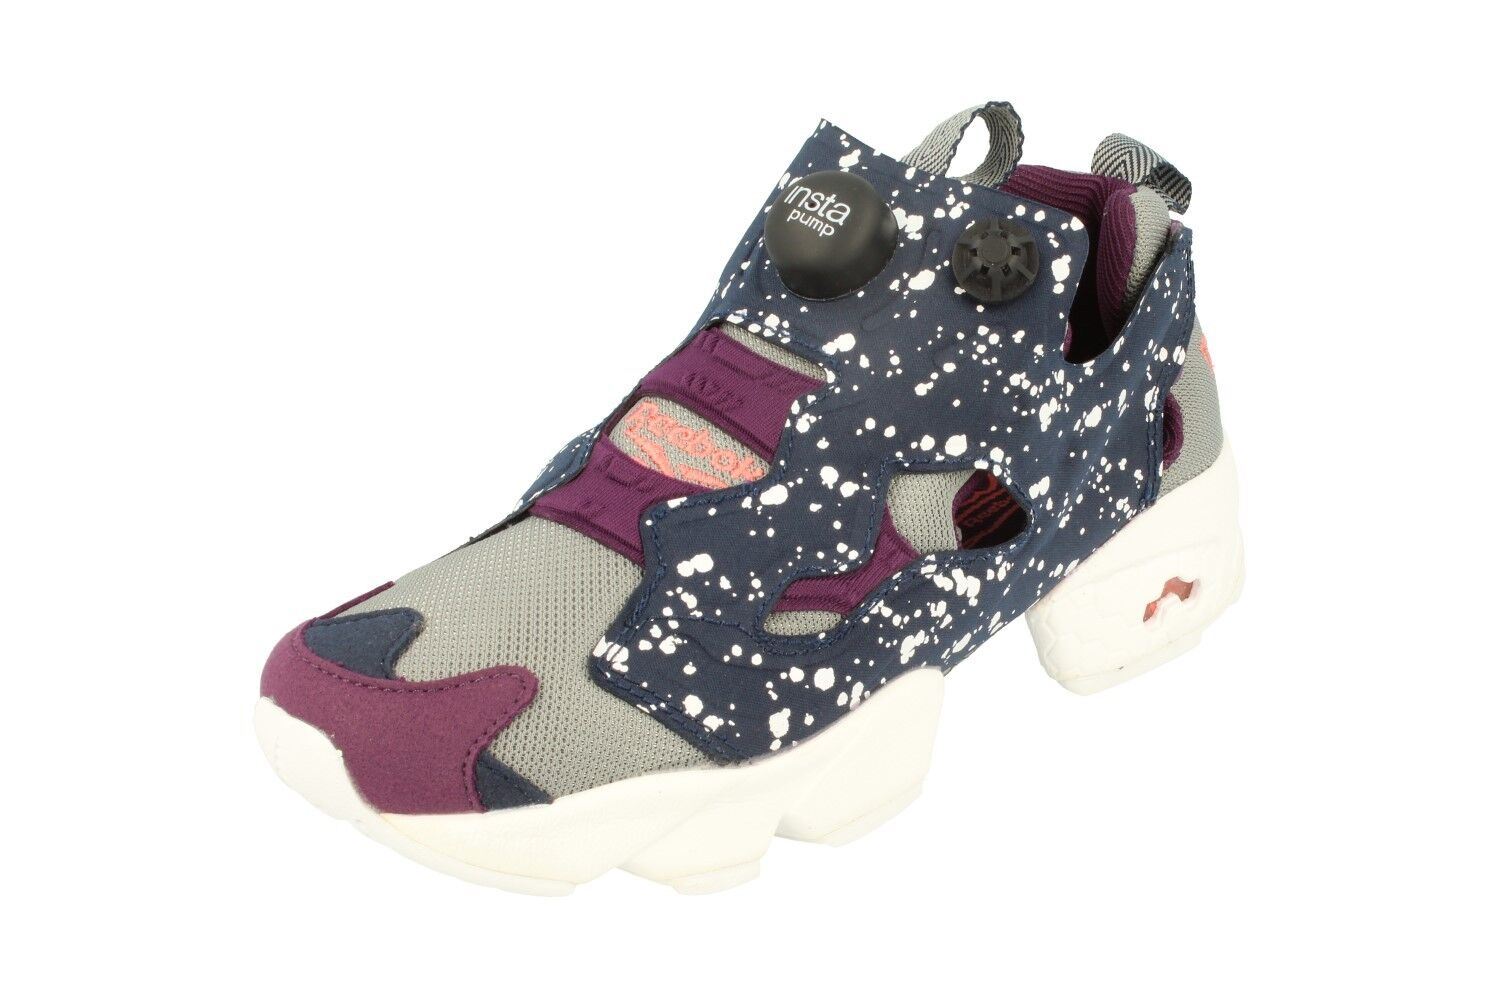 Reebok Instapump Fury SP V66116 Mens Running Trainers Sneakers